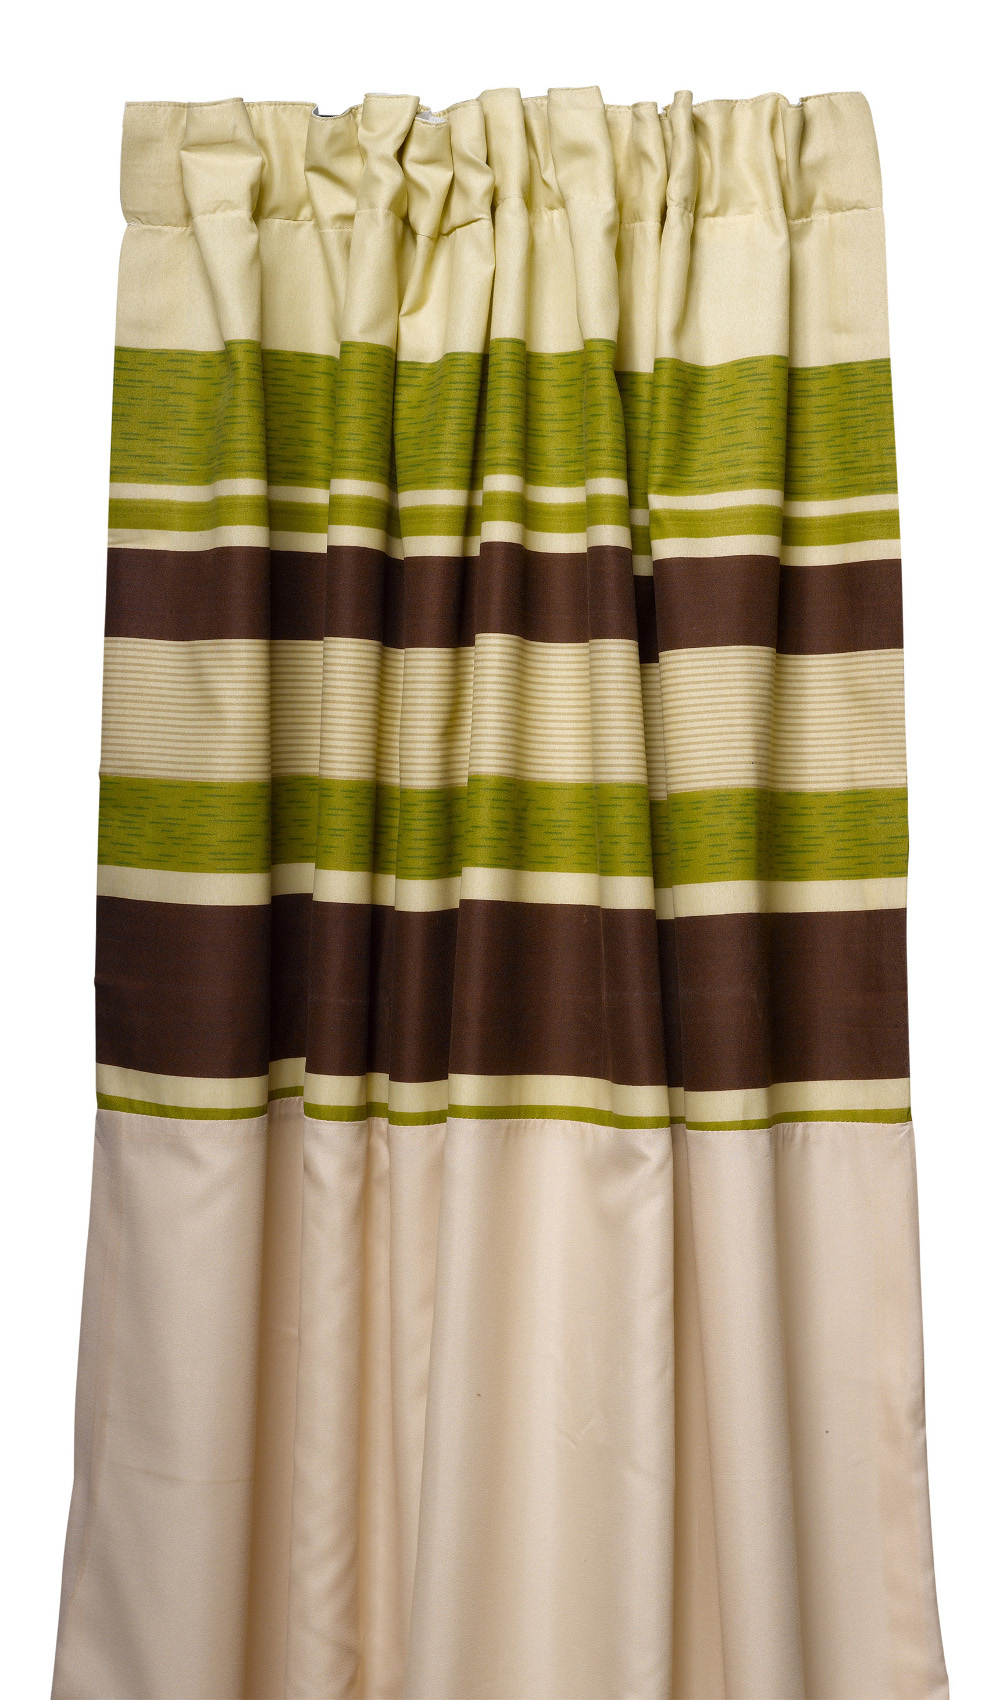 Green Striped Fully Lined Pair Of Curtains Ready